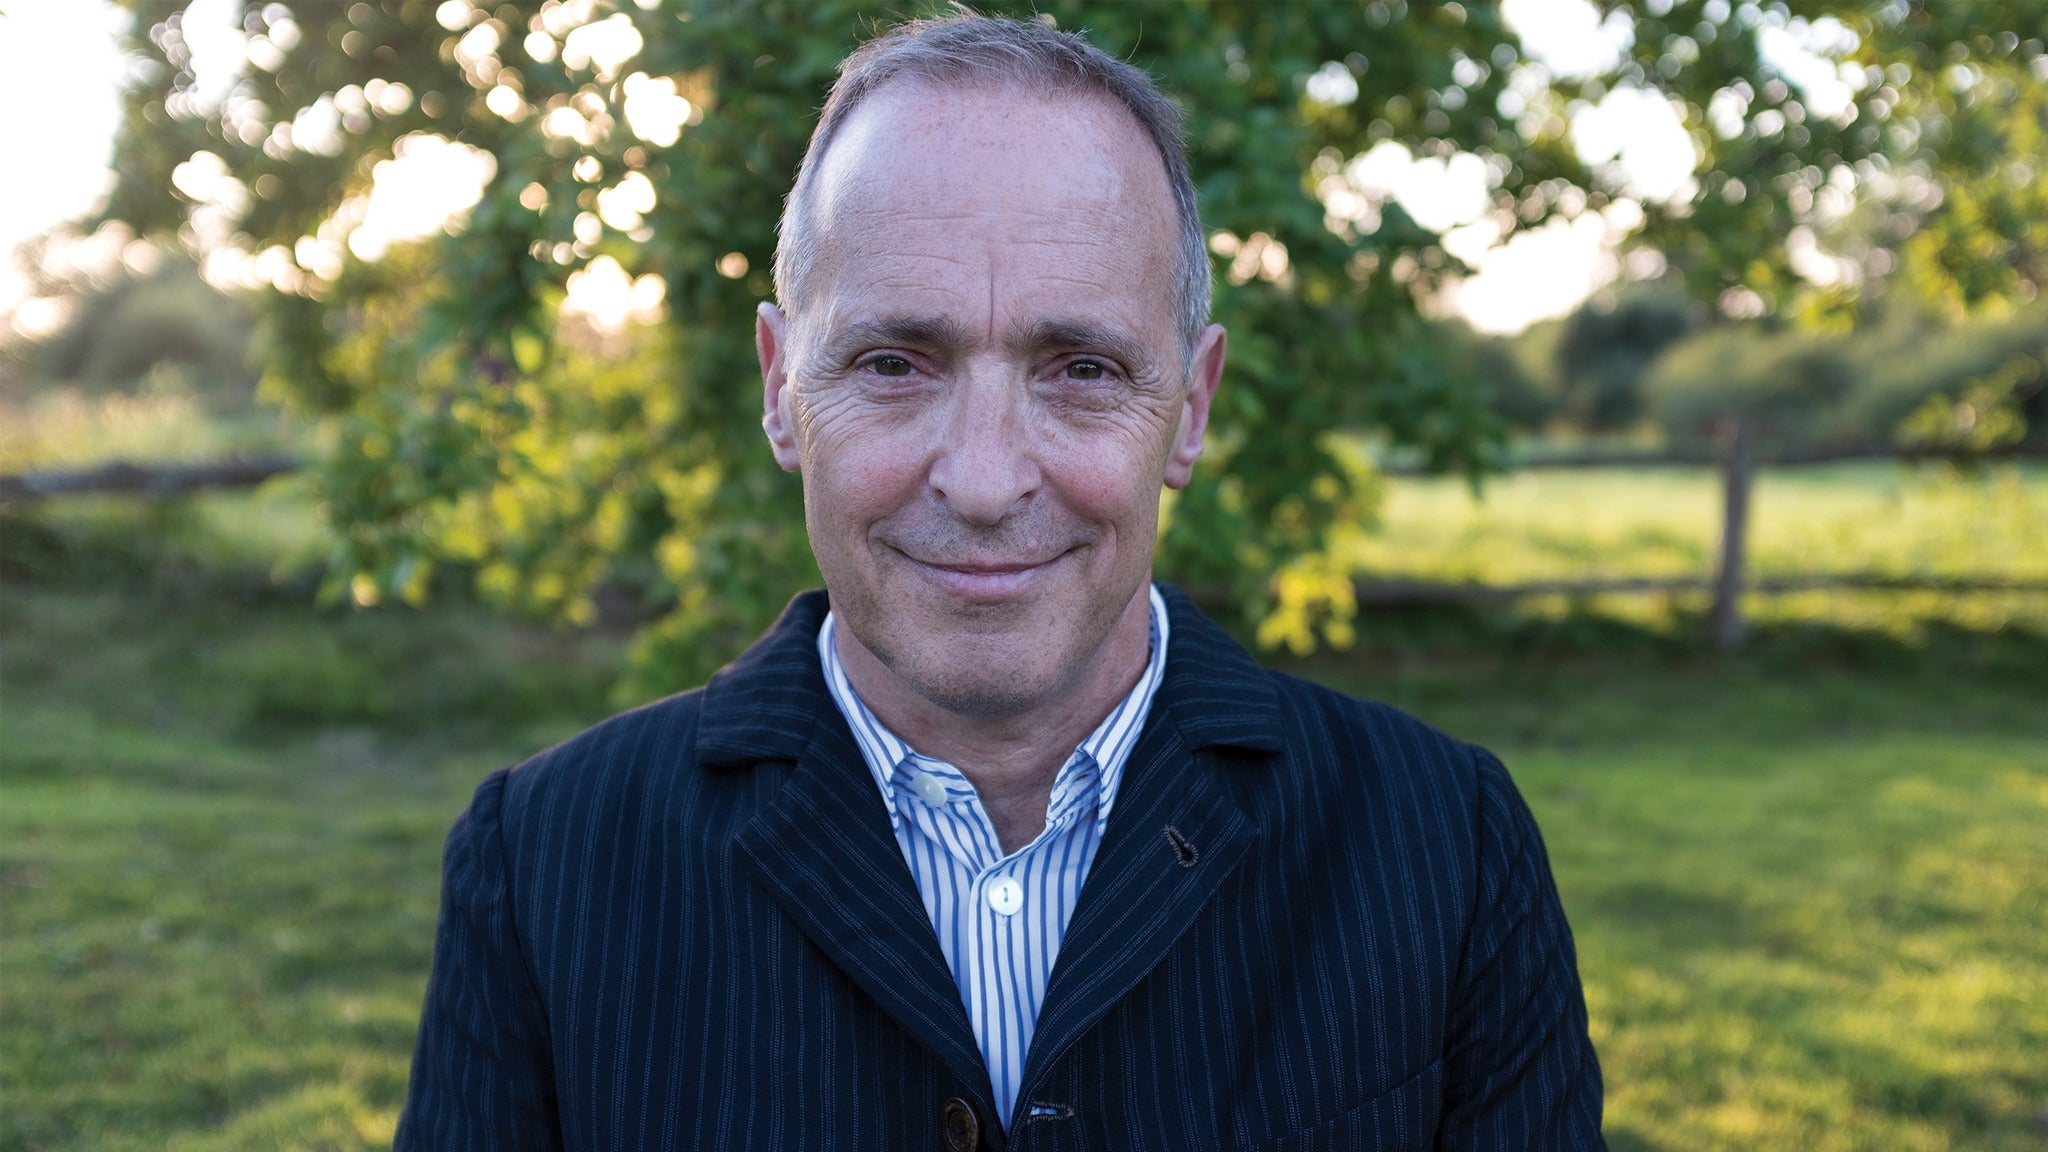 David Sedaris at Count Basie Center for the Arts